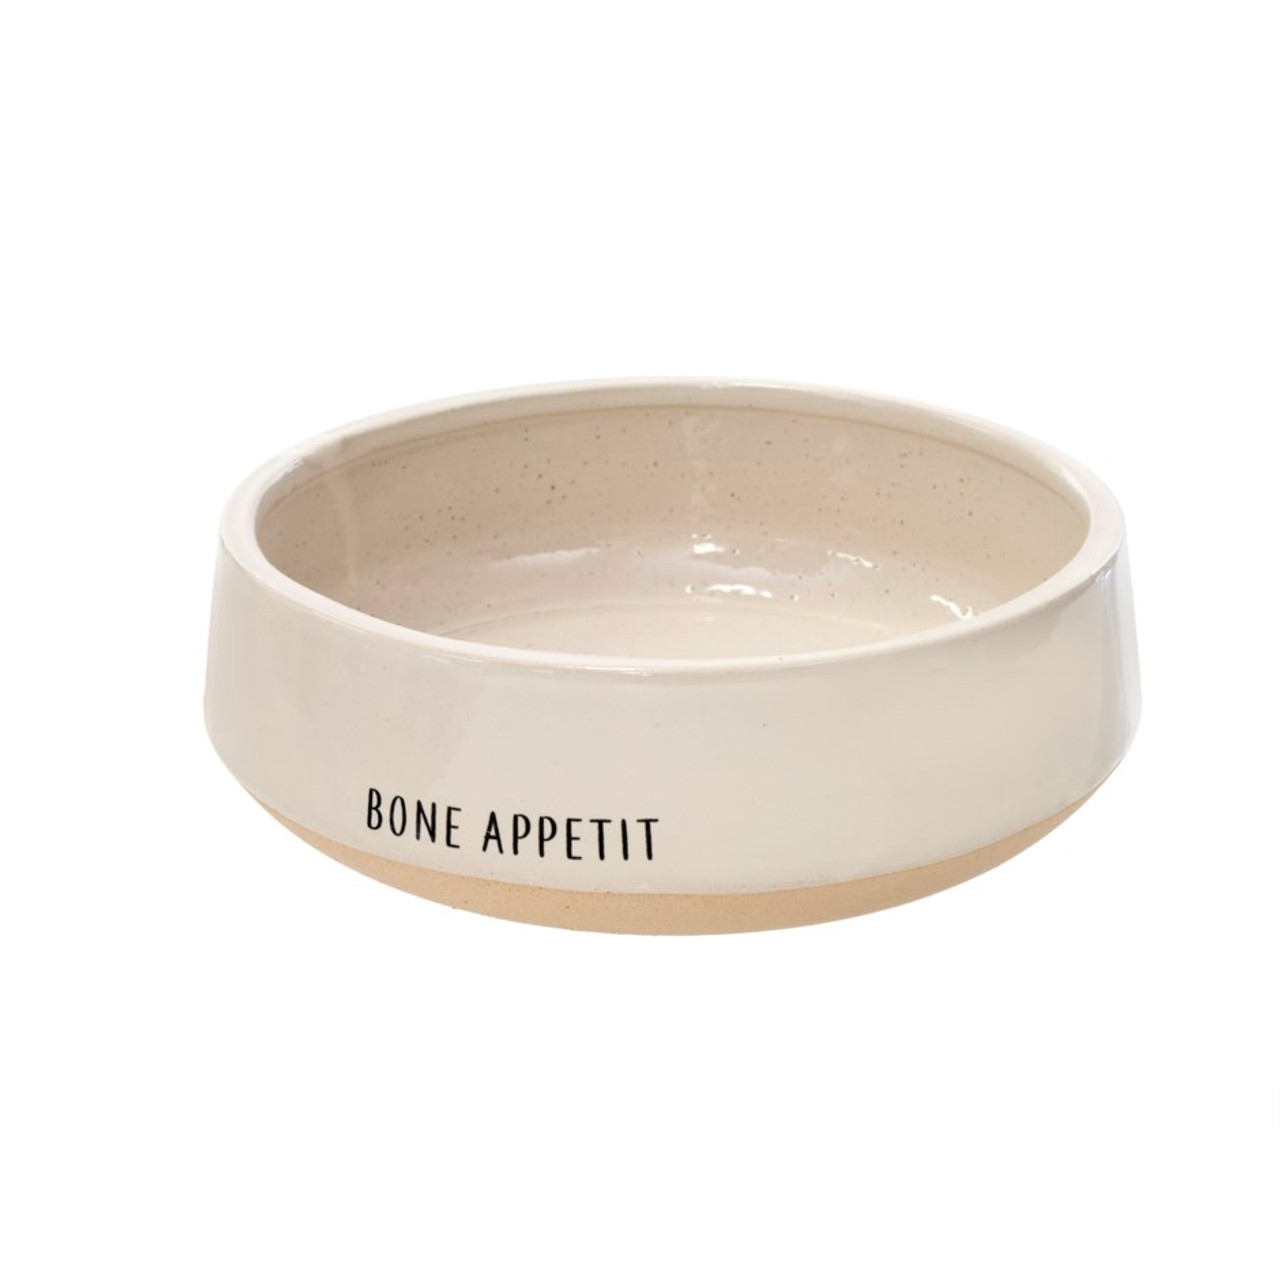 DOG BOWL - BONE APPETIT